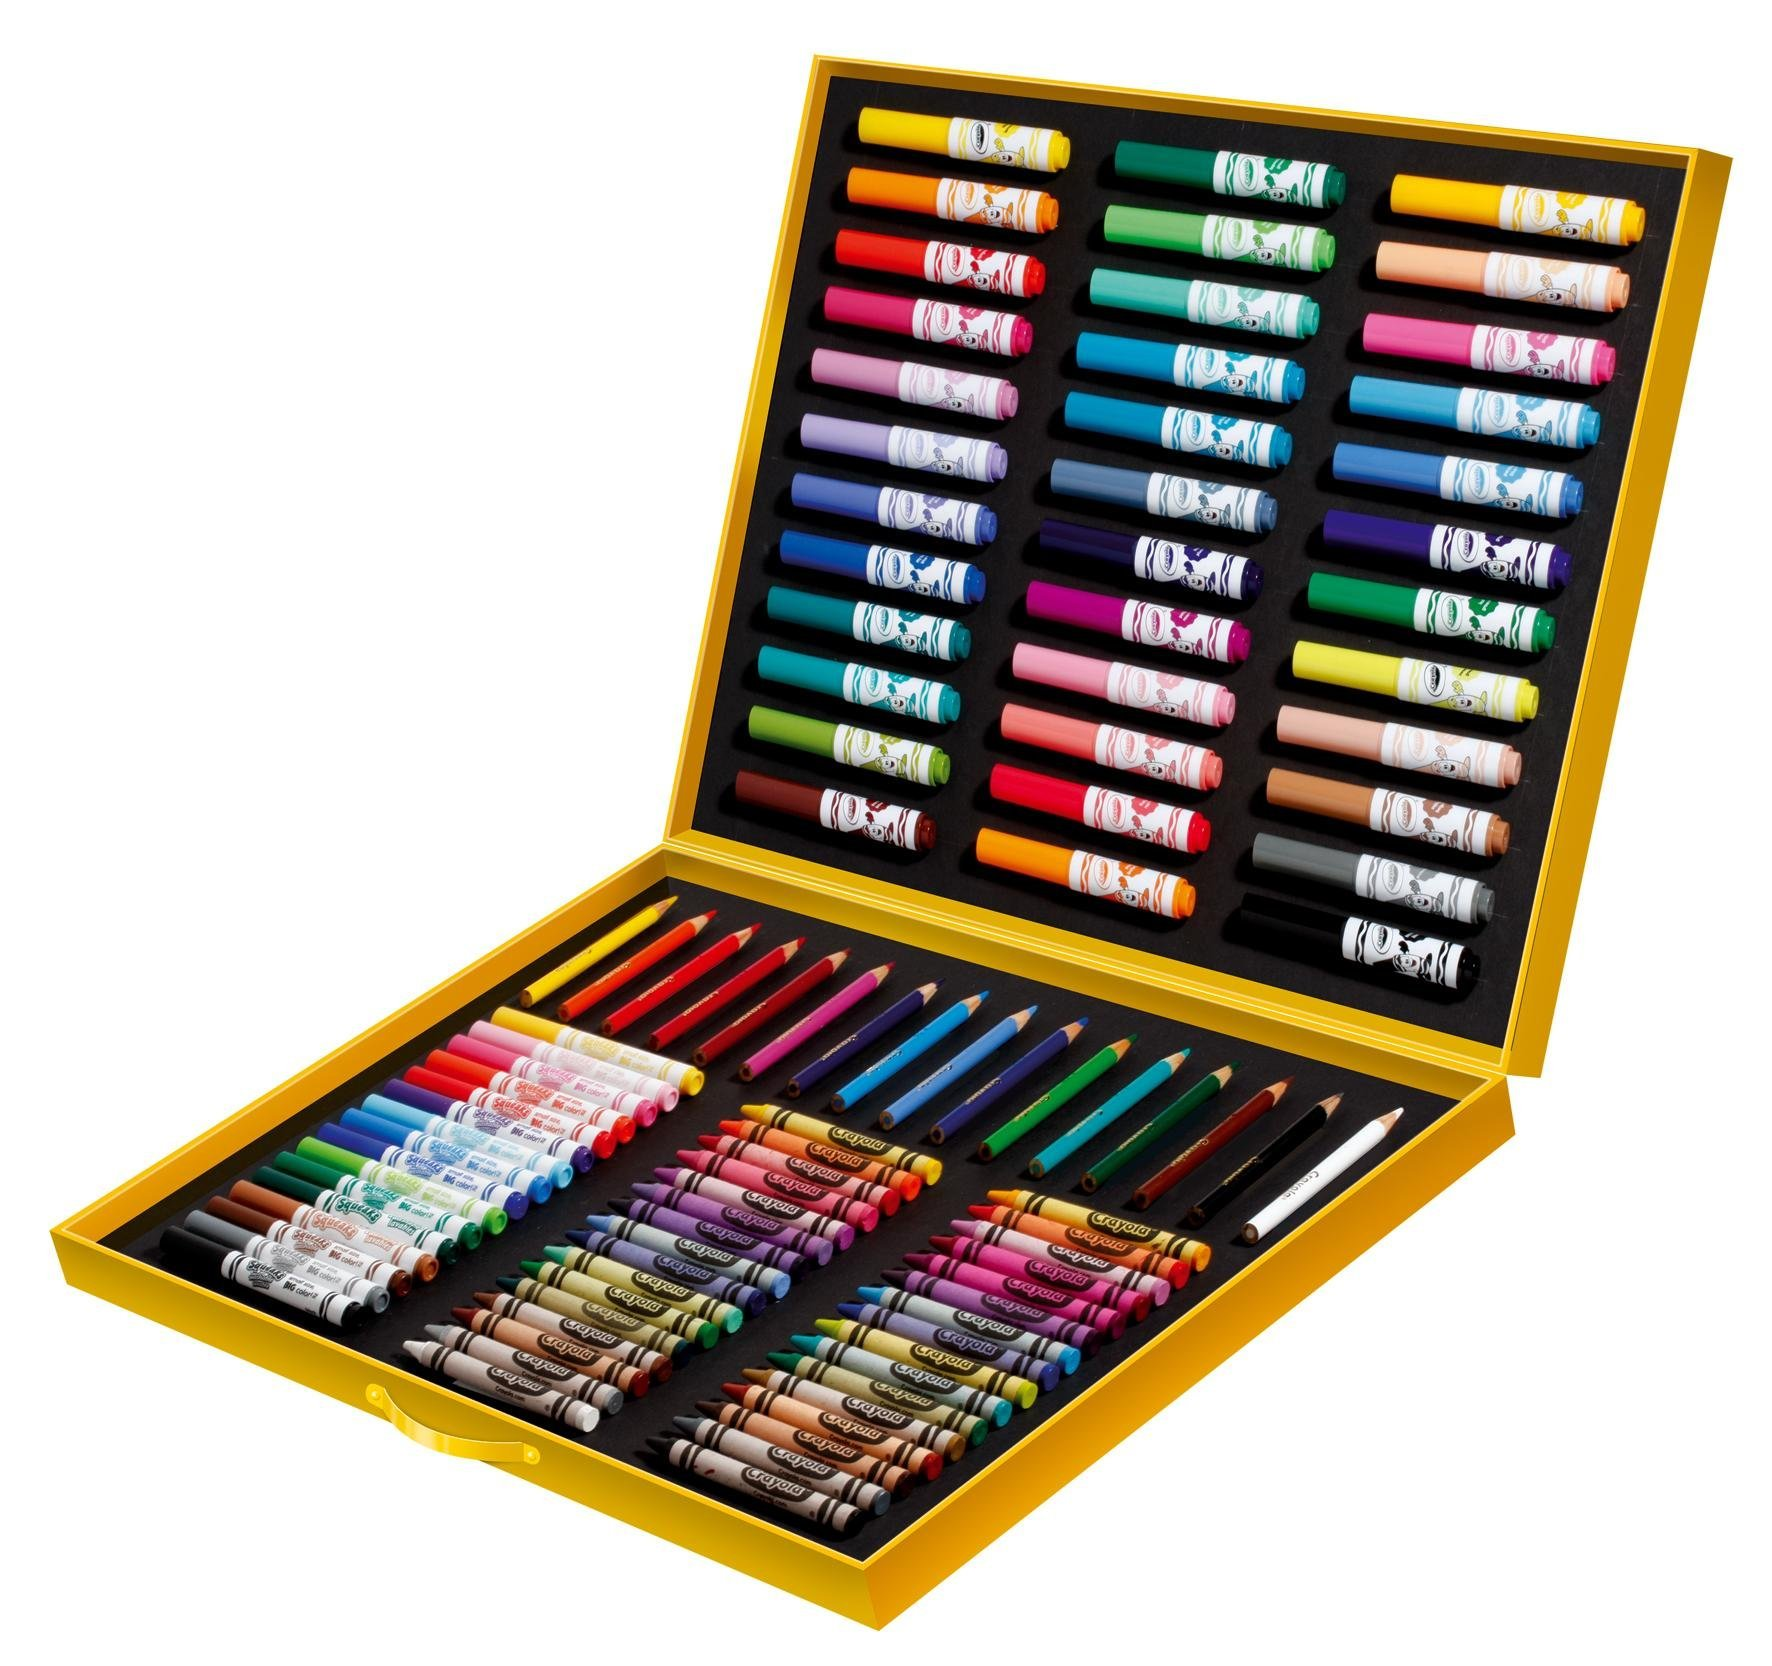 crayola 10651 crayons de couleurs et feutres mallette de coloriage de l 39 artiste. Black Bedroom Furniture Sets. Home Design Ideas